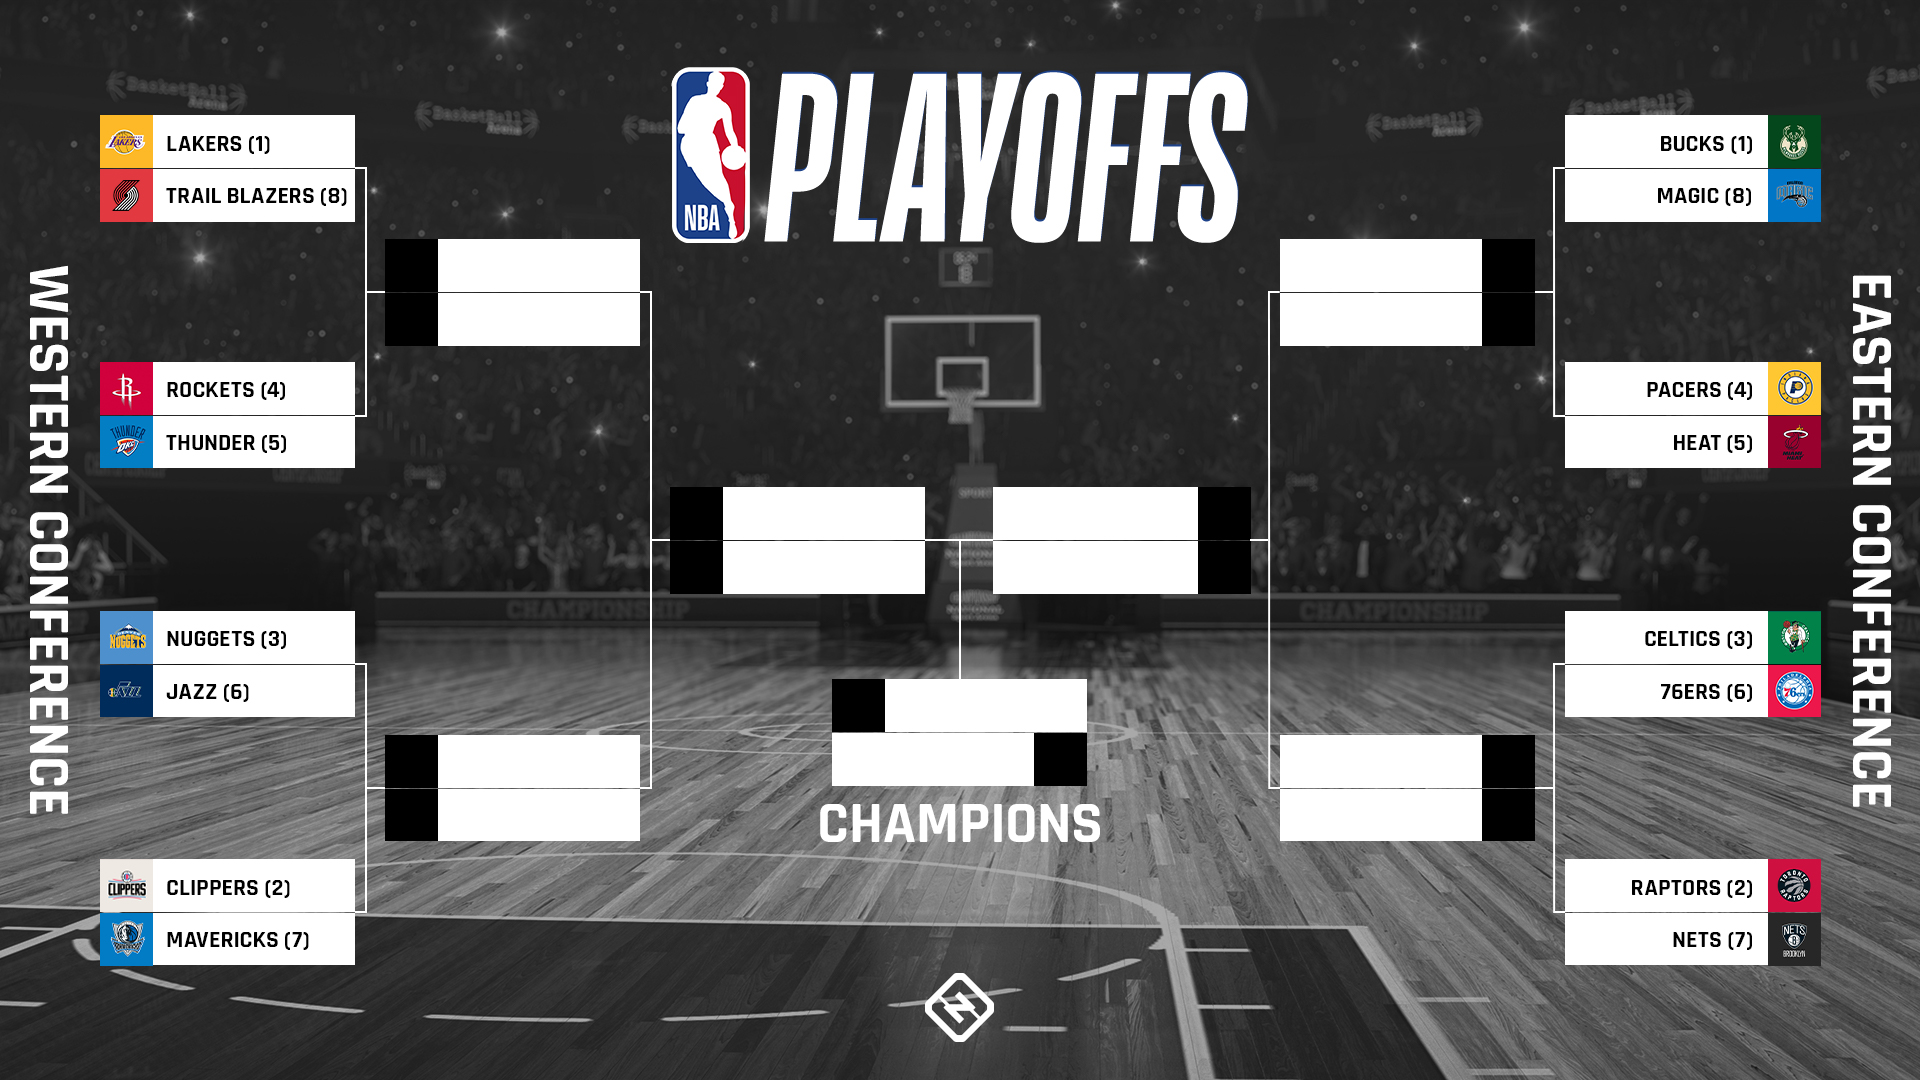 NBA playoff games today 2020: Live scores, TV schedule & more to watch Monday's matchups in bubble